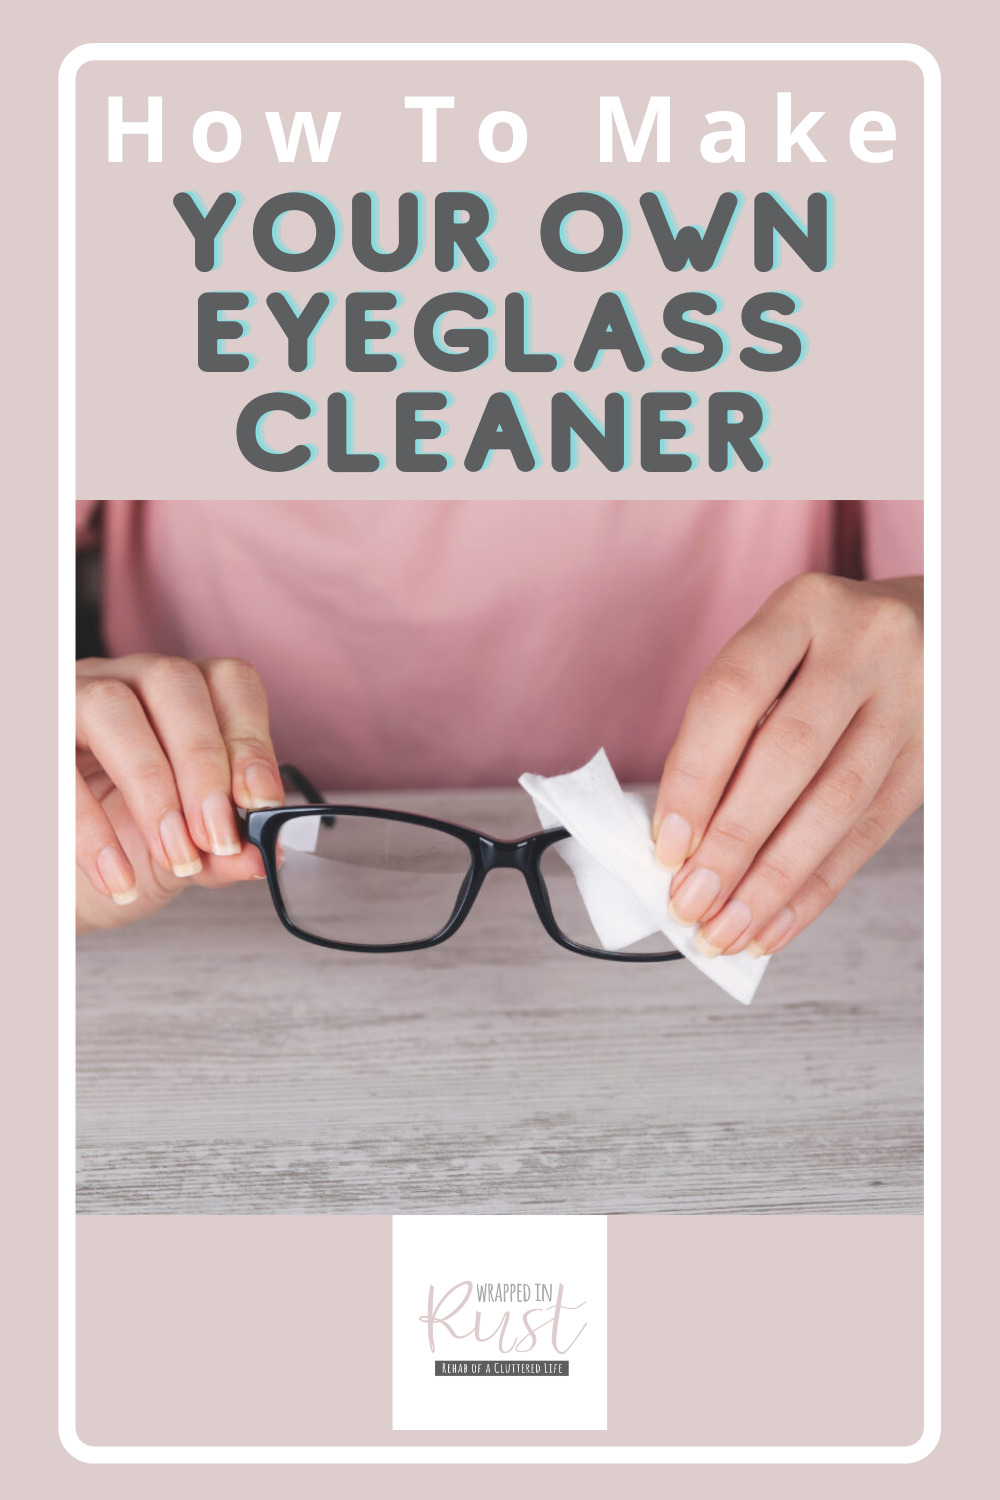 Wrappedinrust.com has creative solutions for tricky cleaning projects. Keep your glasses spotless without overspending on store bought solution. Learn how to make eyeglass cleaner all on your own!